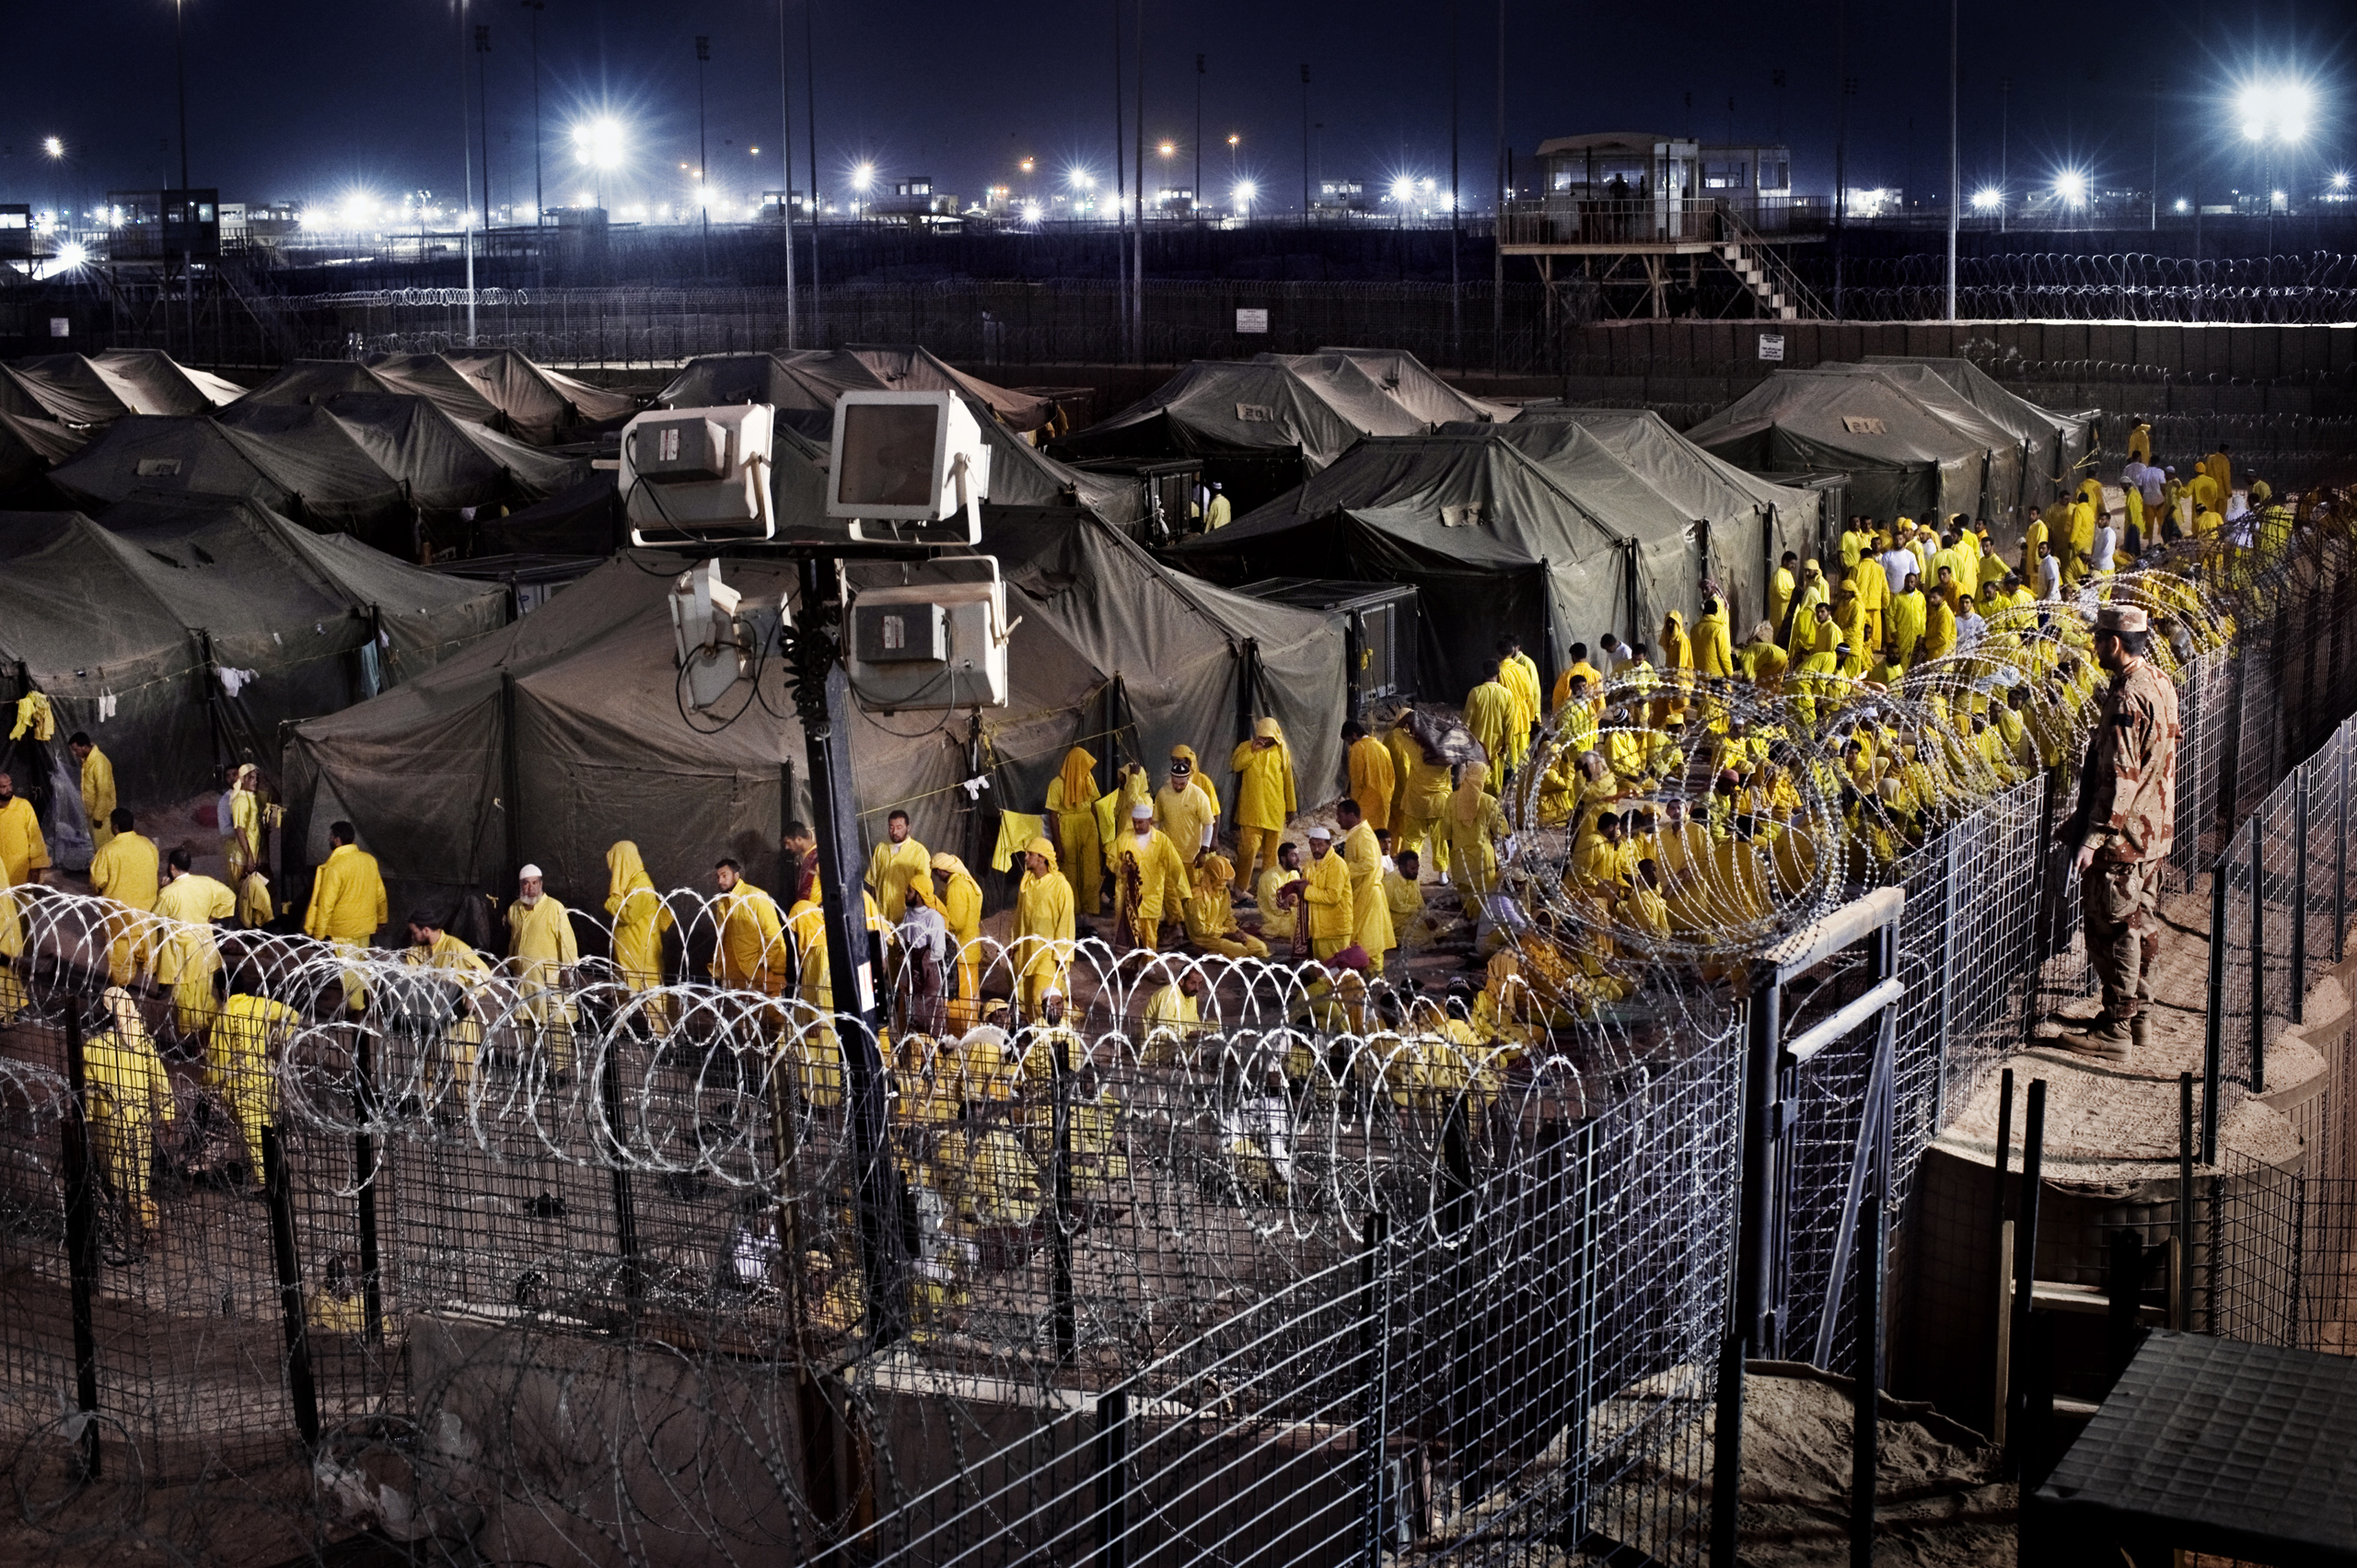 Detainees walk after prayer at Camp Bucca, a U.S. military detention center, March 16, 2009. At its peak, the prison located 340 miles southeast of Baghdad held 26,000 detainees.